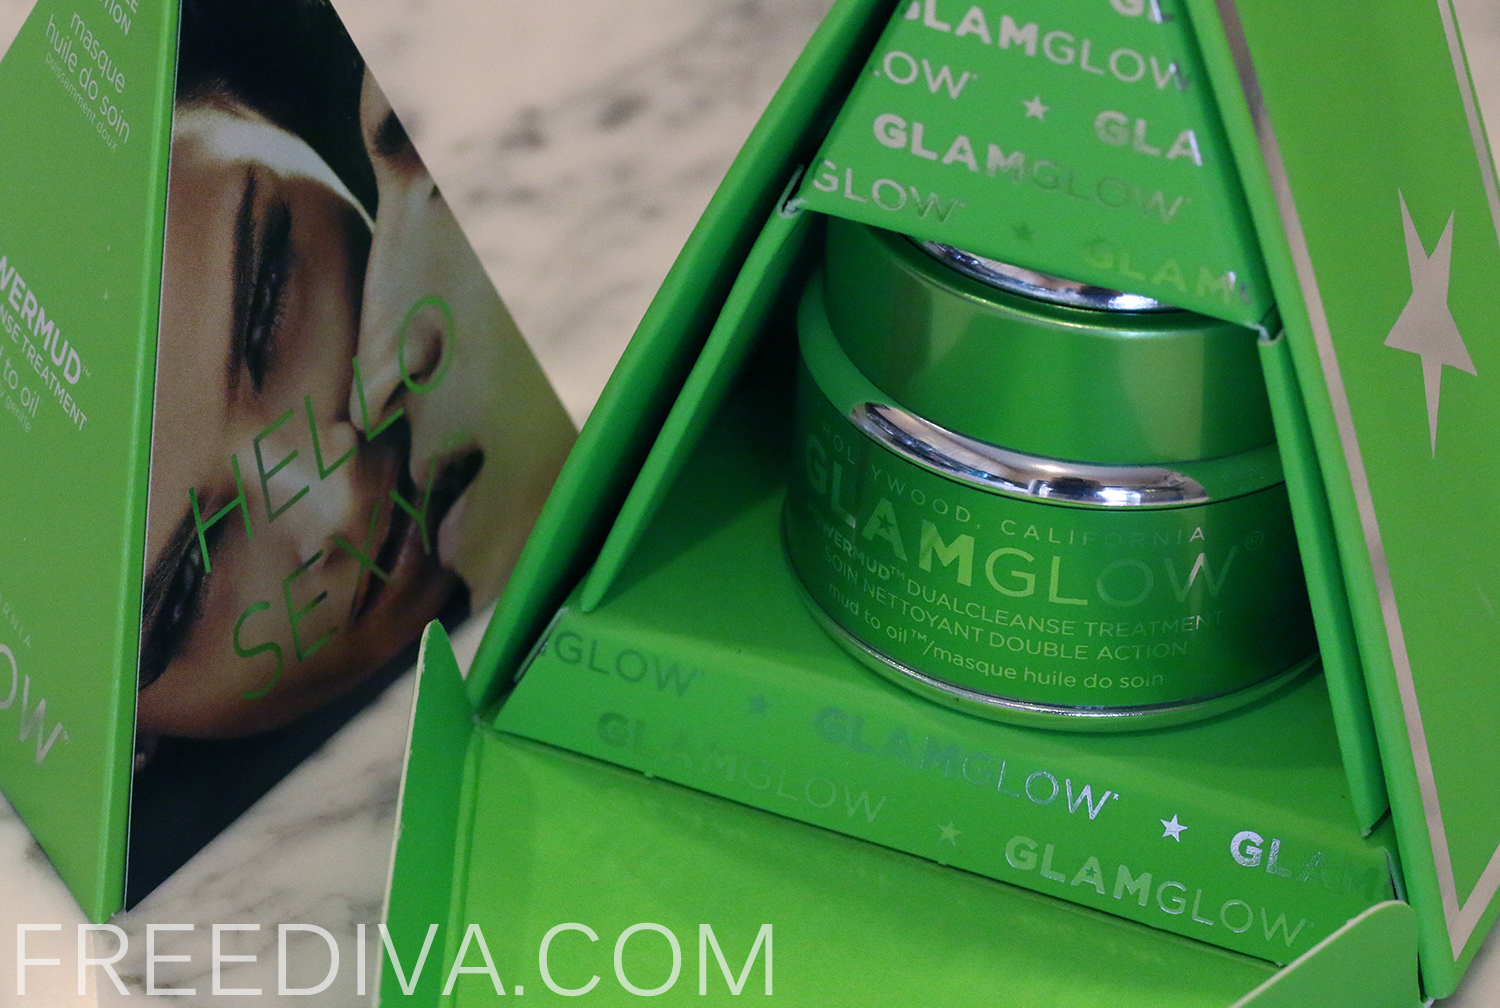 """Powermud """"Mud to Oil"""" DualCleanse Treatment Mask from GlamGlow"""